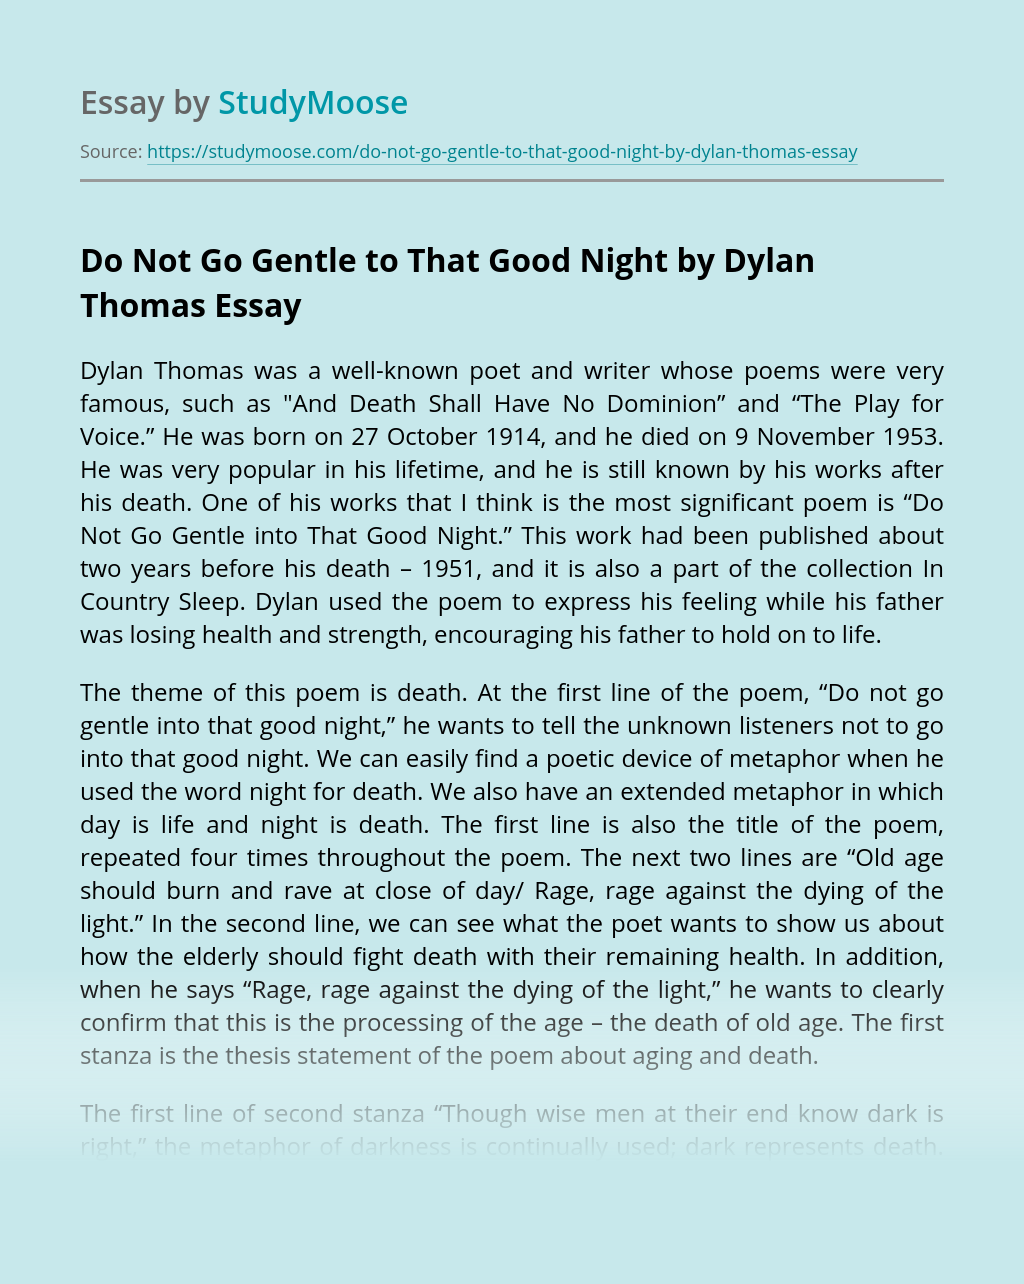 Do Not Gentle Into That Good Night Essay